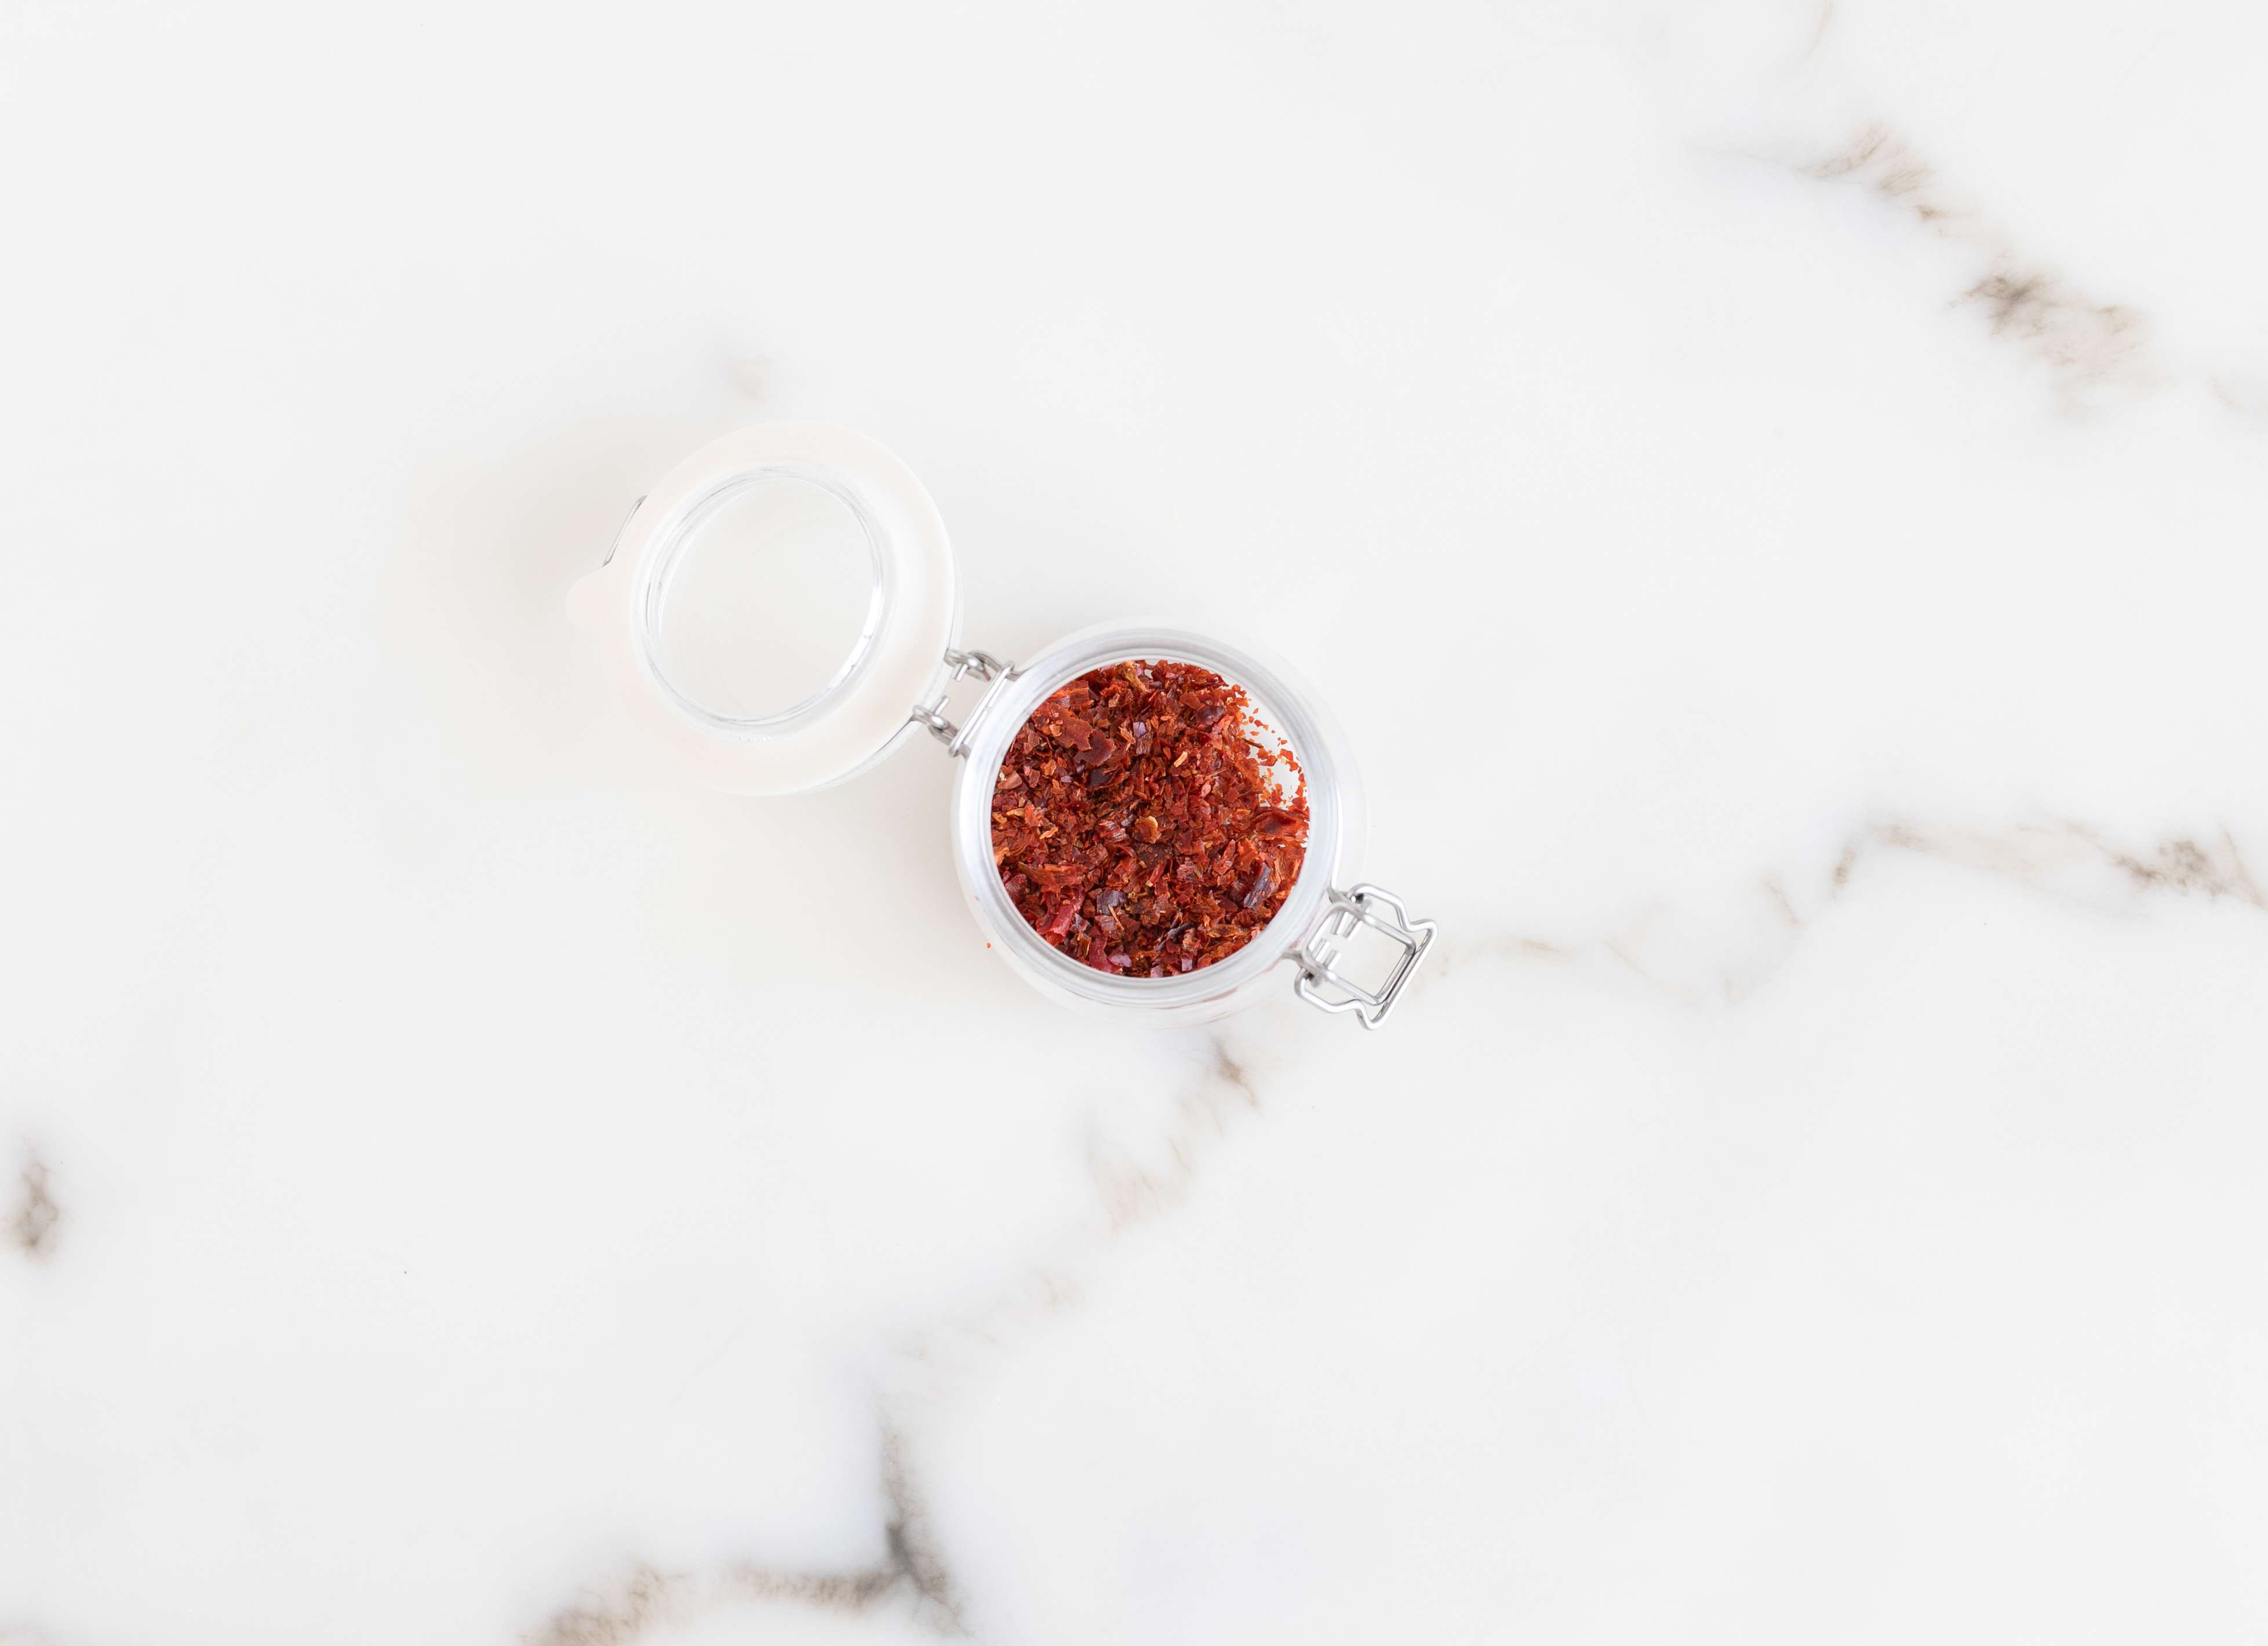 Place the chilies in a jar